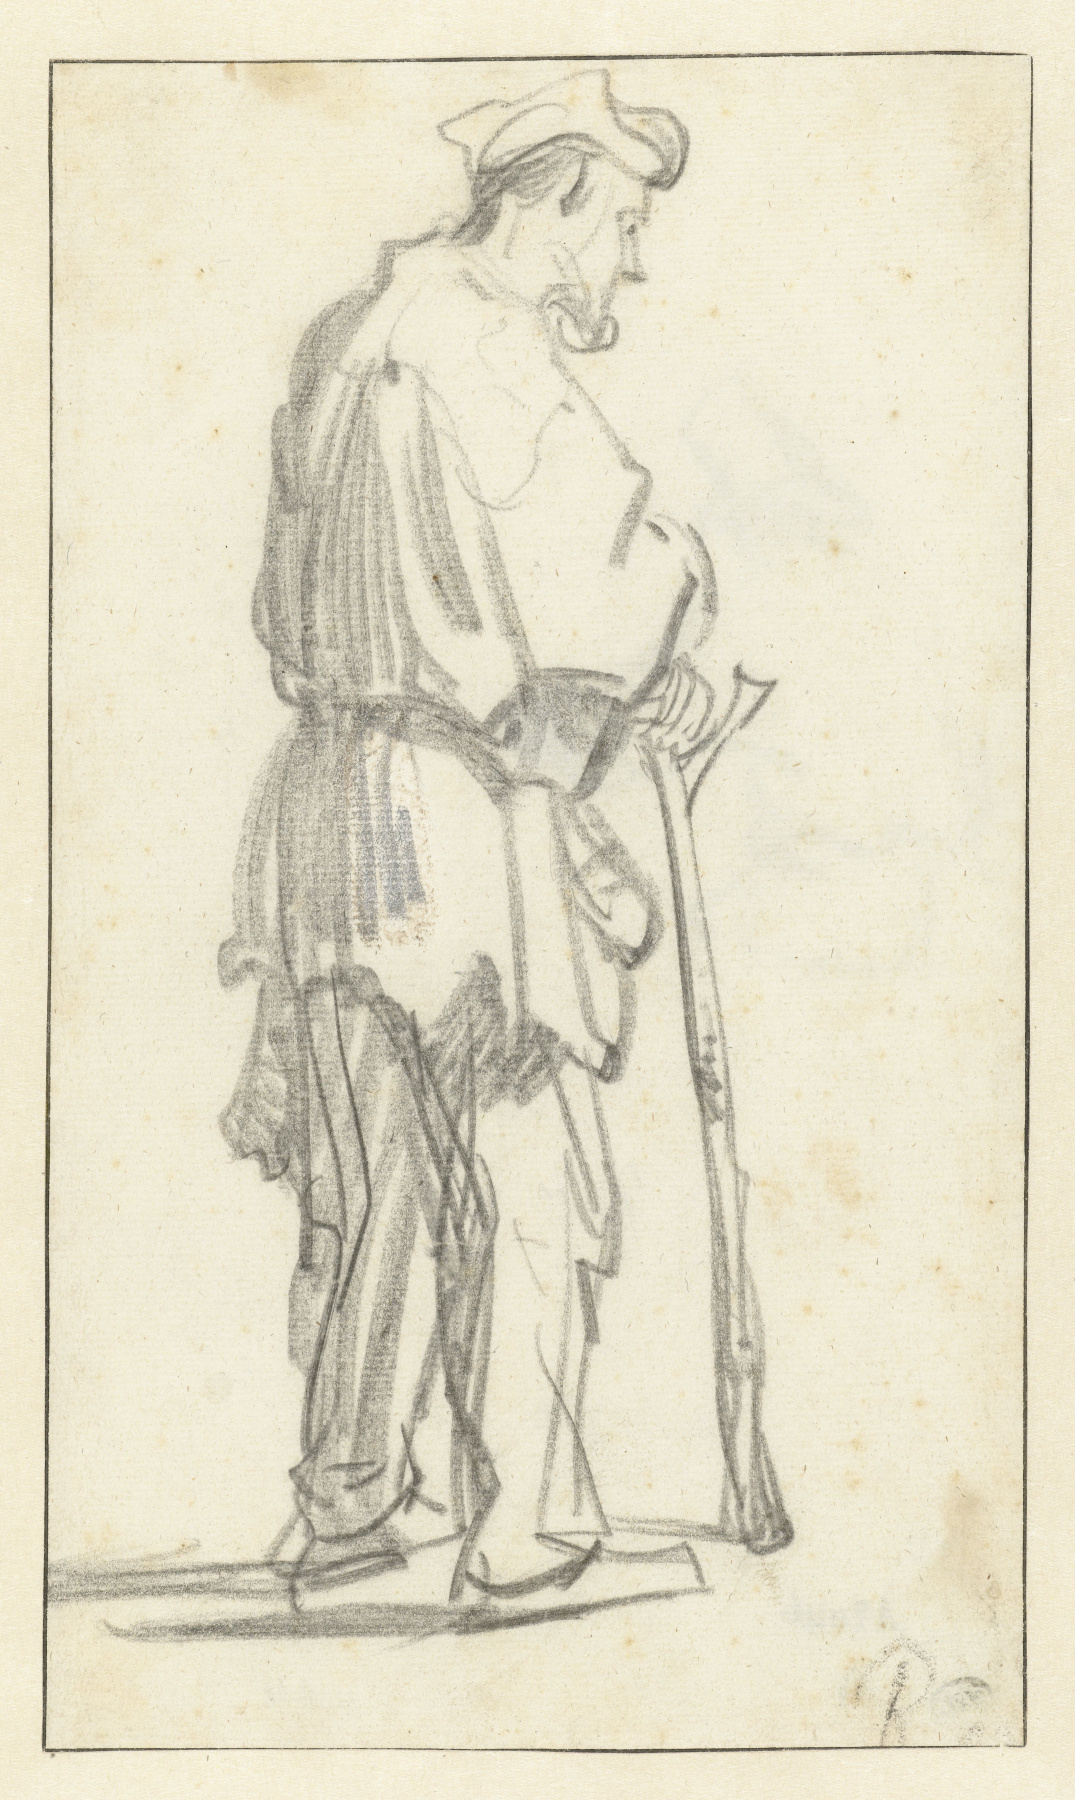 Rembrandt Harmenszoon van Rijn. Standing Man with a Stick, Facing Right